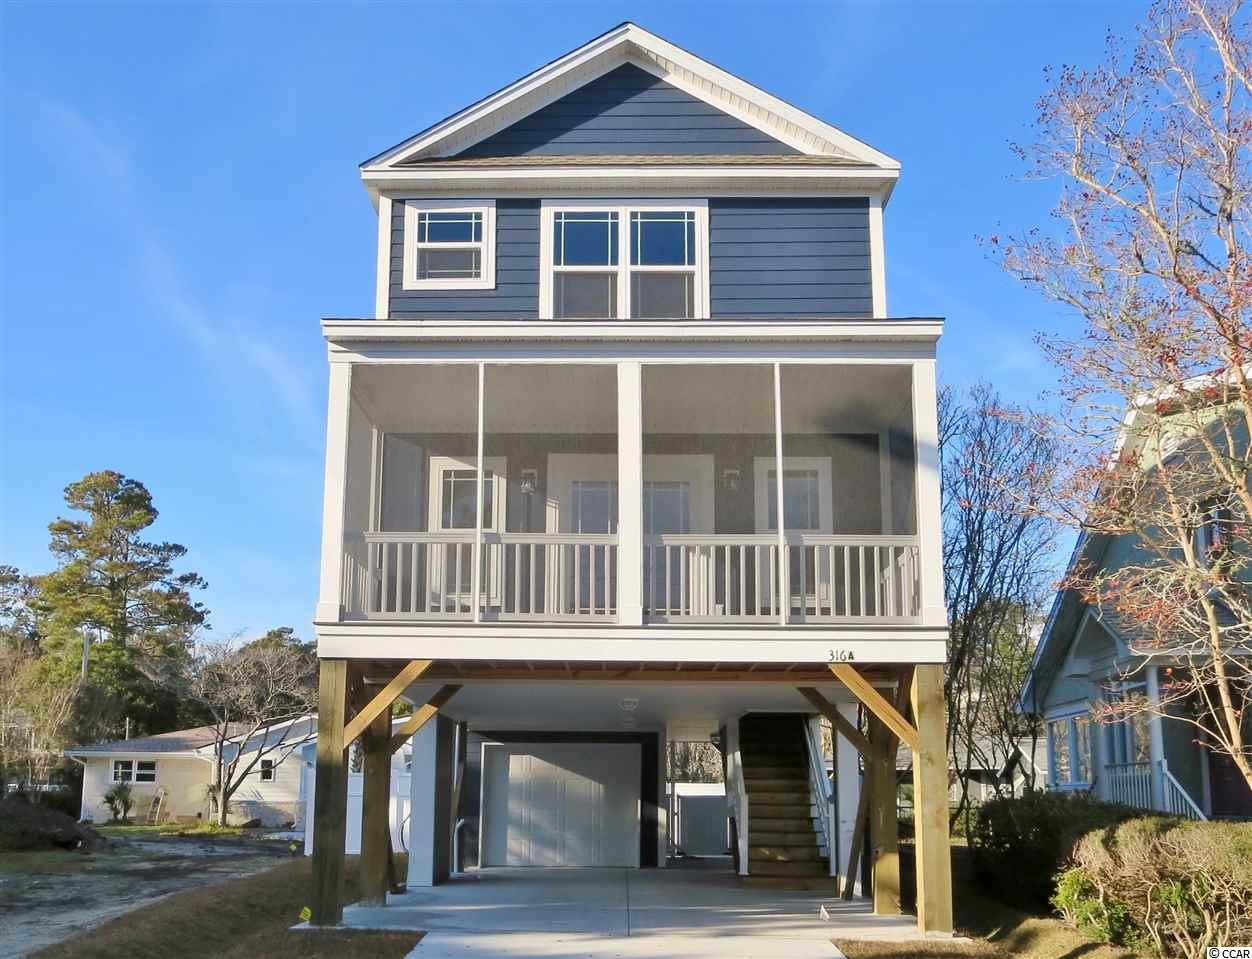 316A Lakeside Drive is a four-bedroom, 3.5 bathroom, 1705 heated square foot raised beach house approximately 900 feet to the beach in the Town of Surfside Beach. The exterior of the home is covered in Color Plus James Hardie concrete fiber siding, porch is Trex composite decking, there is parking for four cars including an 18x11 garage, outdoor hot and cold enclosed shower, six-foot vinyl privacy fence around a private pool with concrete paver decking. This brand-new home has an open concept on the main floor, accommodating a bedroom, full and half bathrooms, kitchen, and living room with direct access to the covered front porch. The custom kitchen will have granite countertops, stainless steel appliances including a refrigerator and a large island with seating for six people. Upstairs there are three additional bedrooms, two full bathrooms, and the laundry room. The master suite has a private bathroom with two sinks and a garden tub, along with a walk-in closet. The home is scheduled for a December 1, completion but can be finished sooner. There is currently an opportunity for the buyer to make color selections. Home is located in R3 zoning, allowing short term vacation rentals.